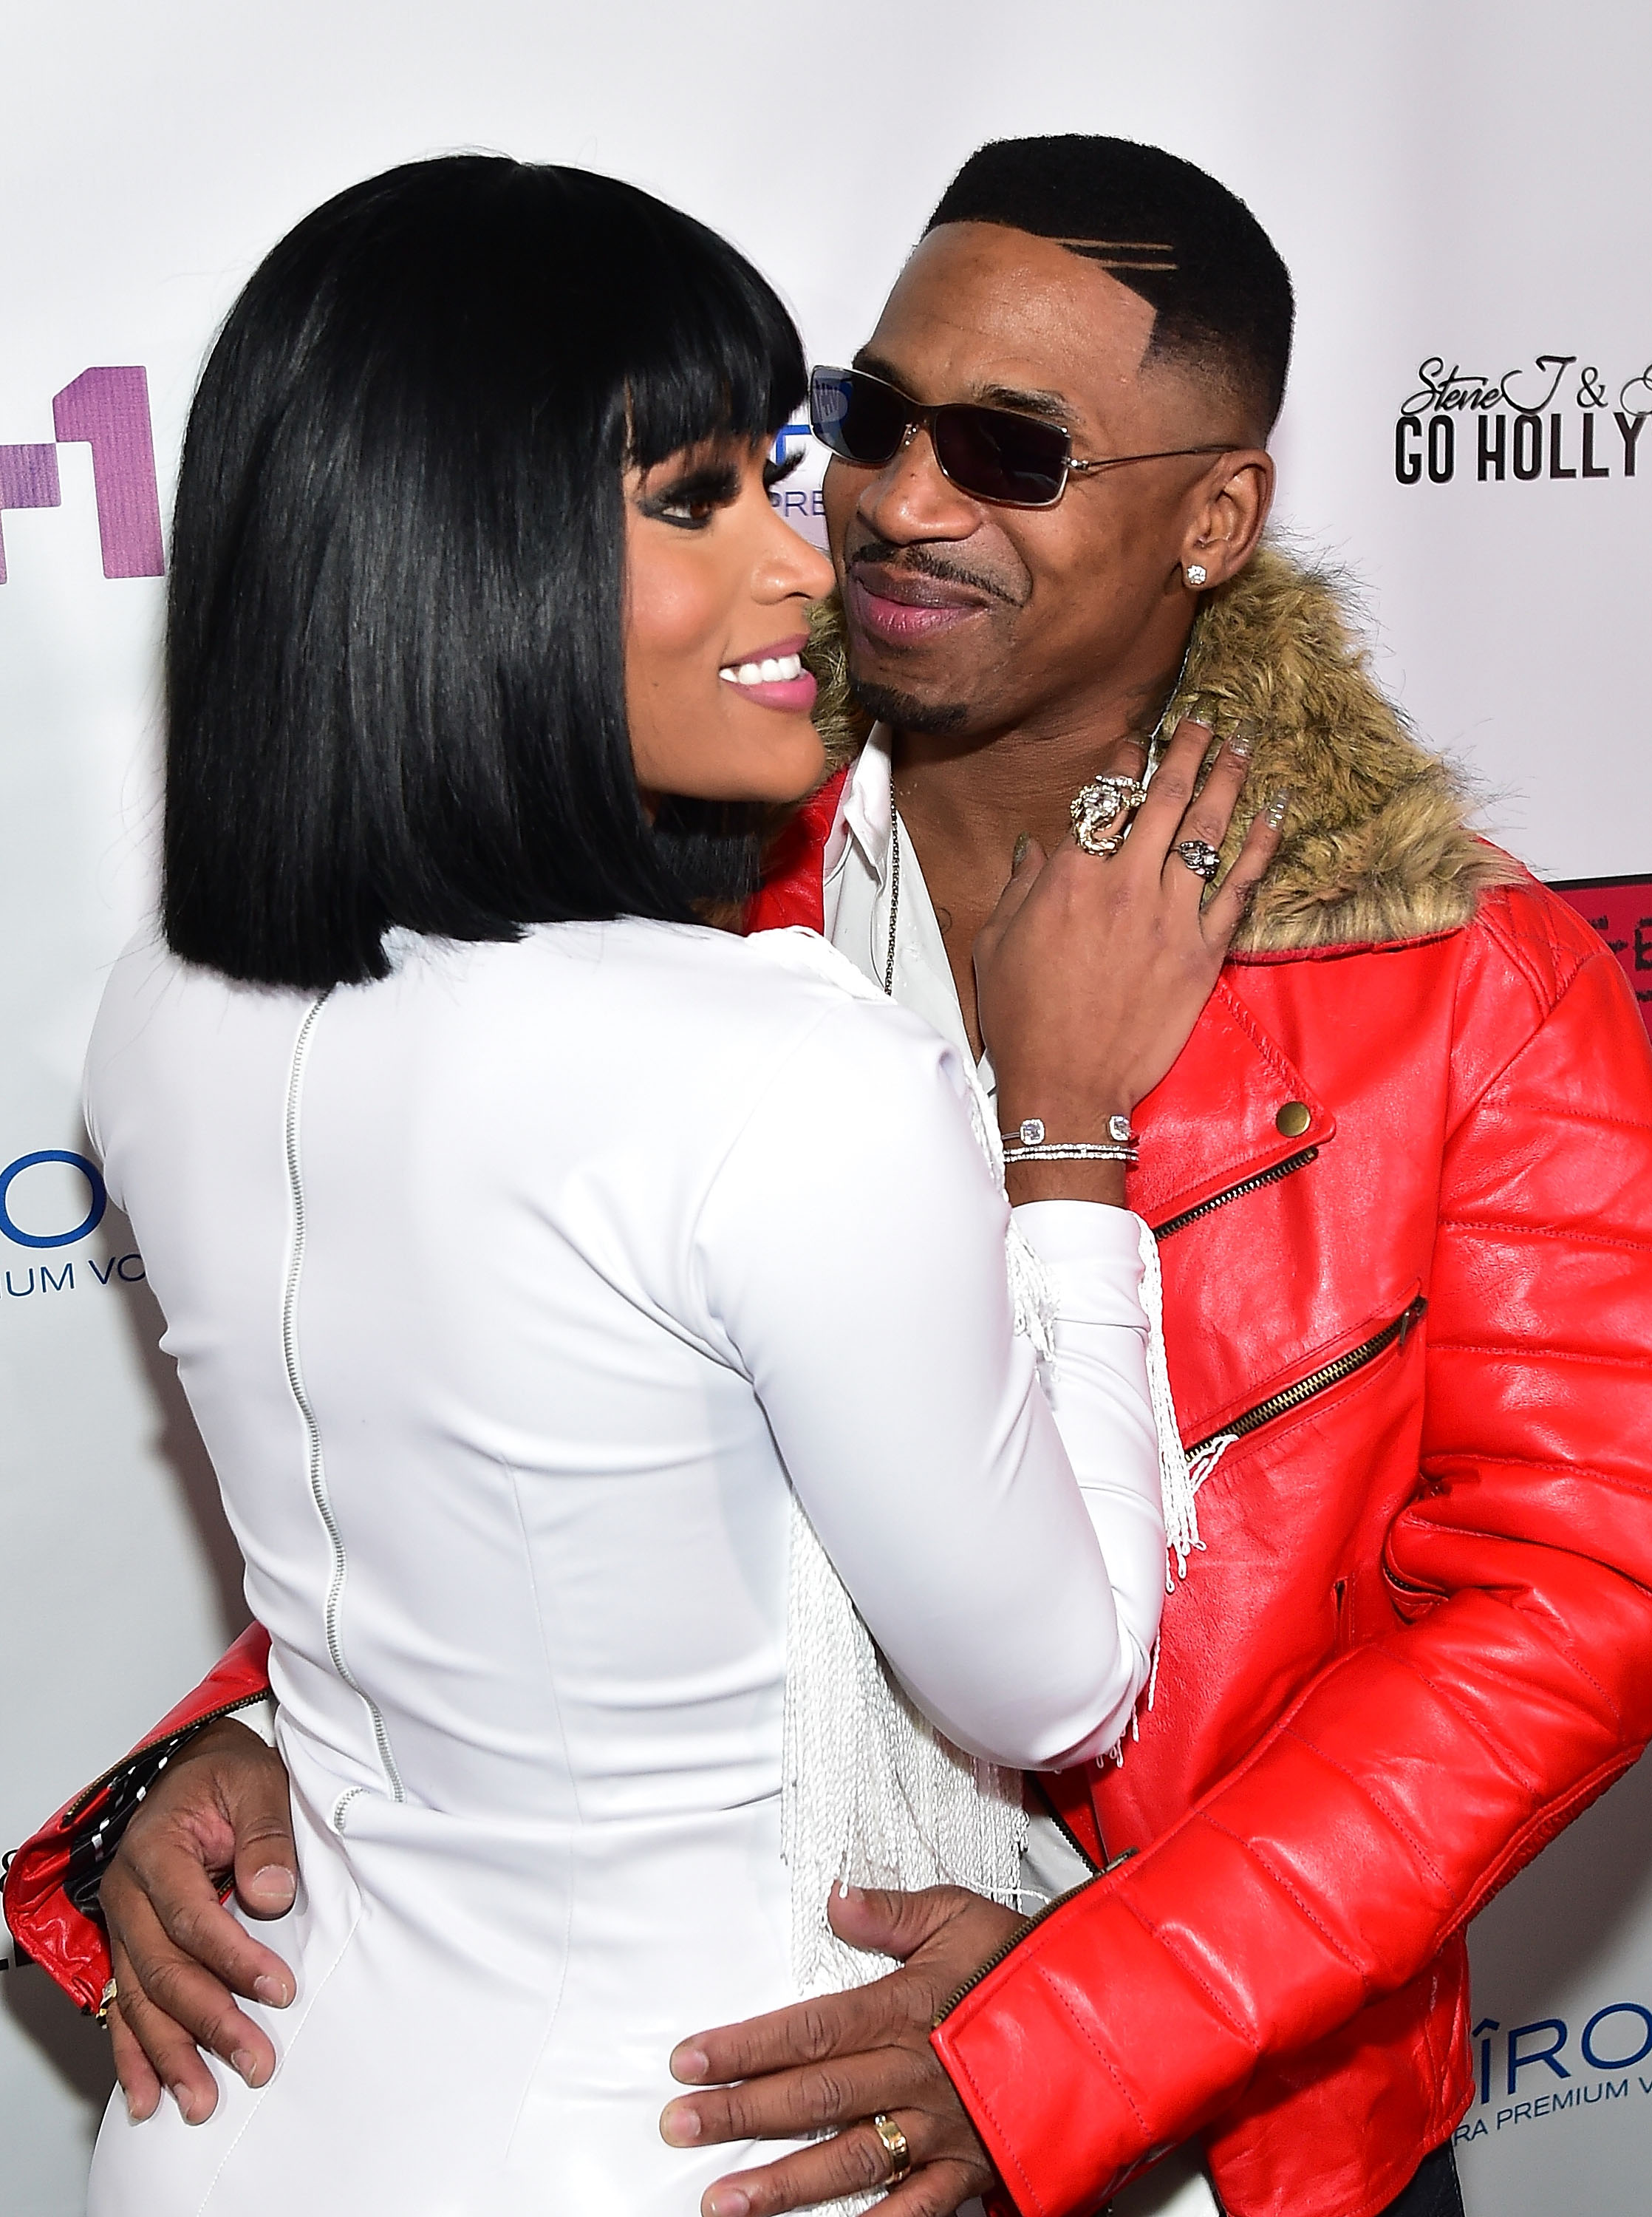 Who is joseline dating now